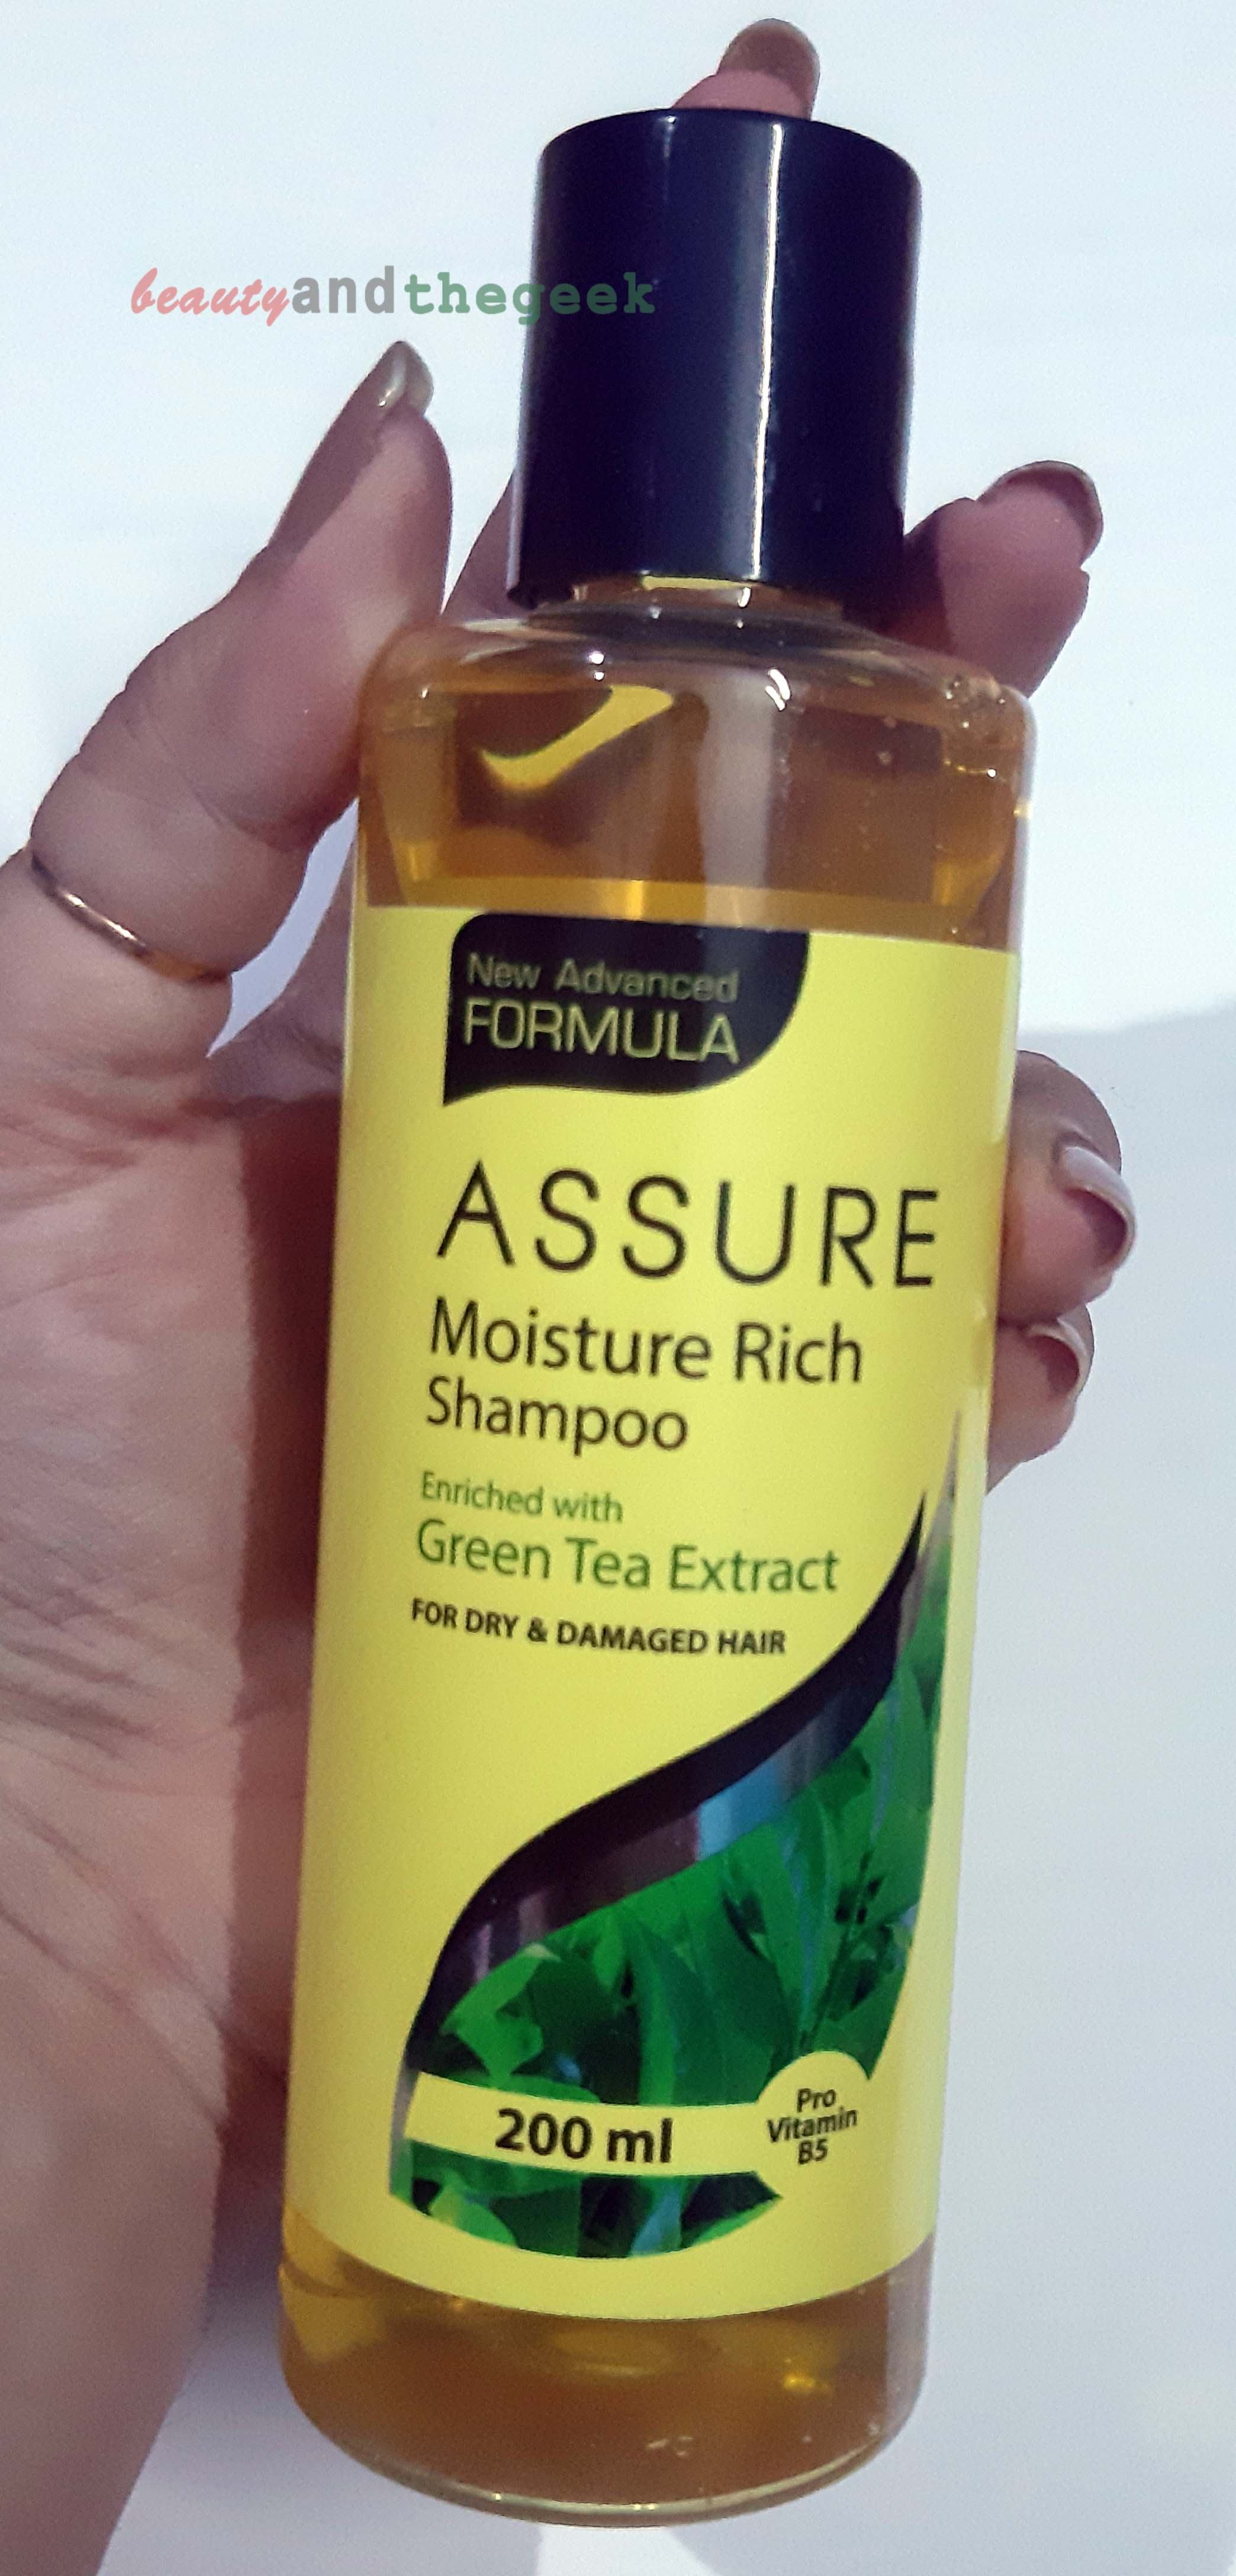 Vestige Assure moisture rich shampoo enriched with green tea extracts